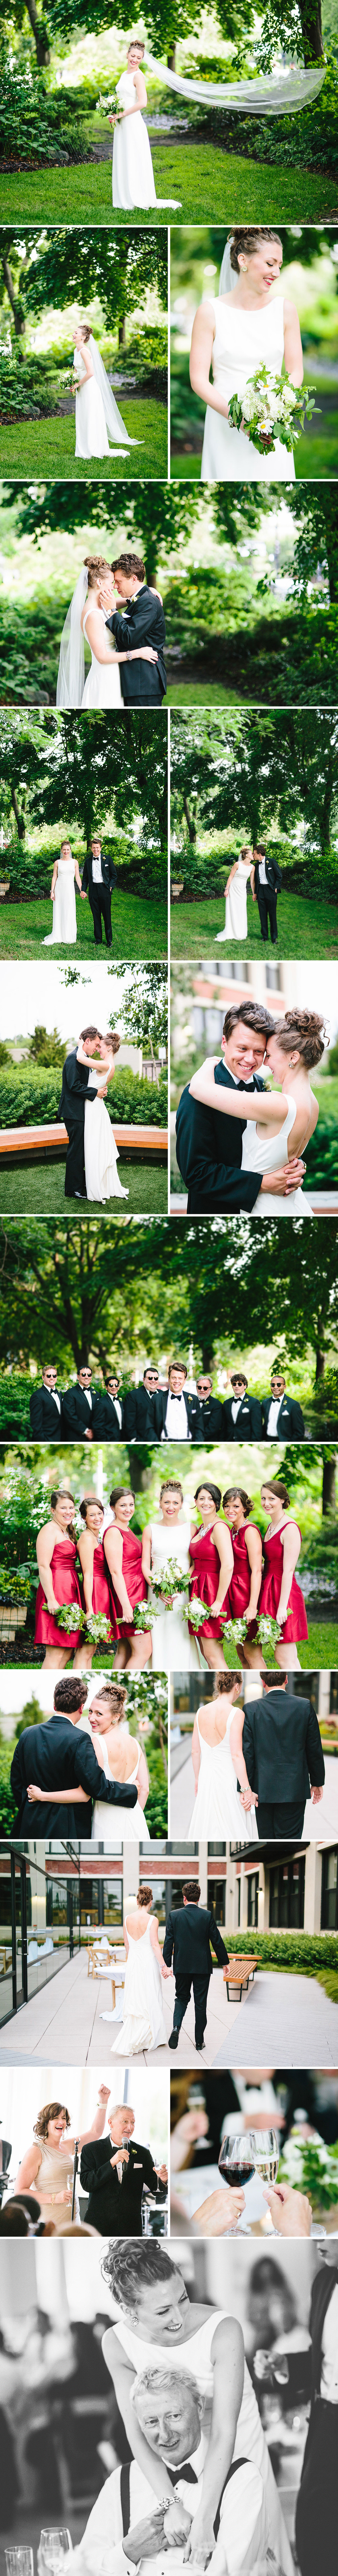 Chicago_Fine_Art_Wedding_Photography_H3.jpg